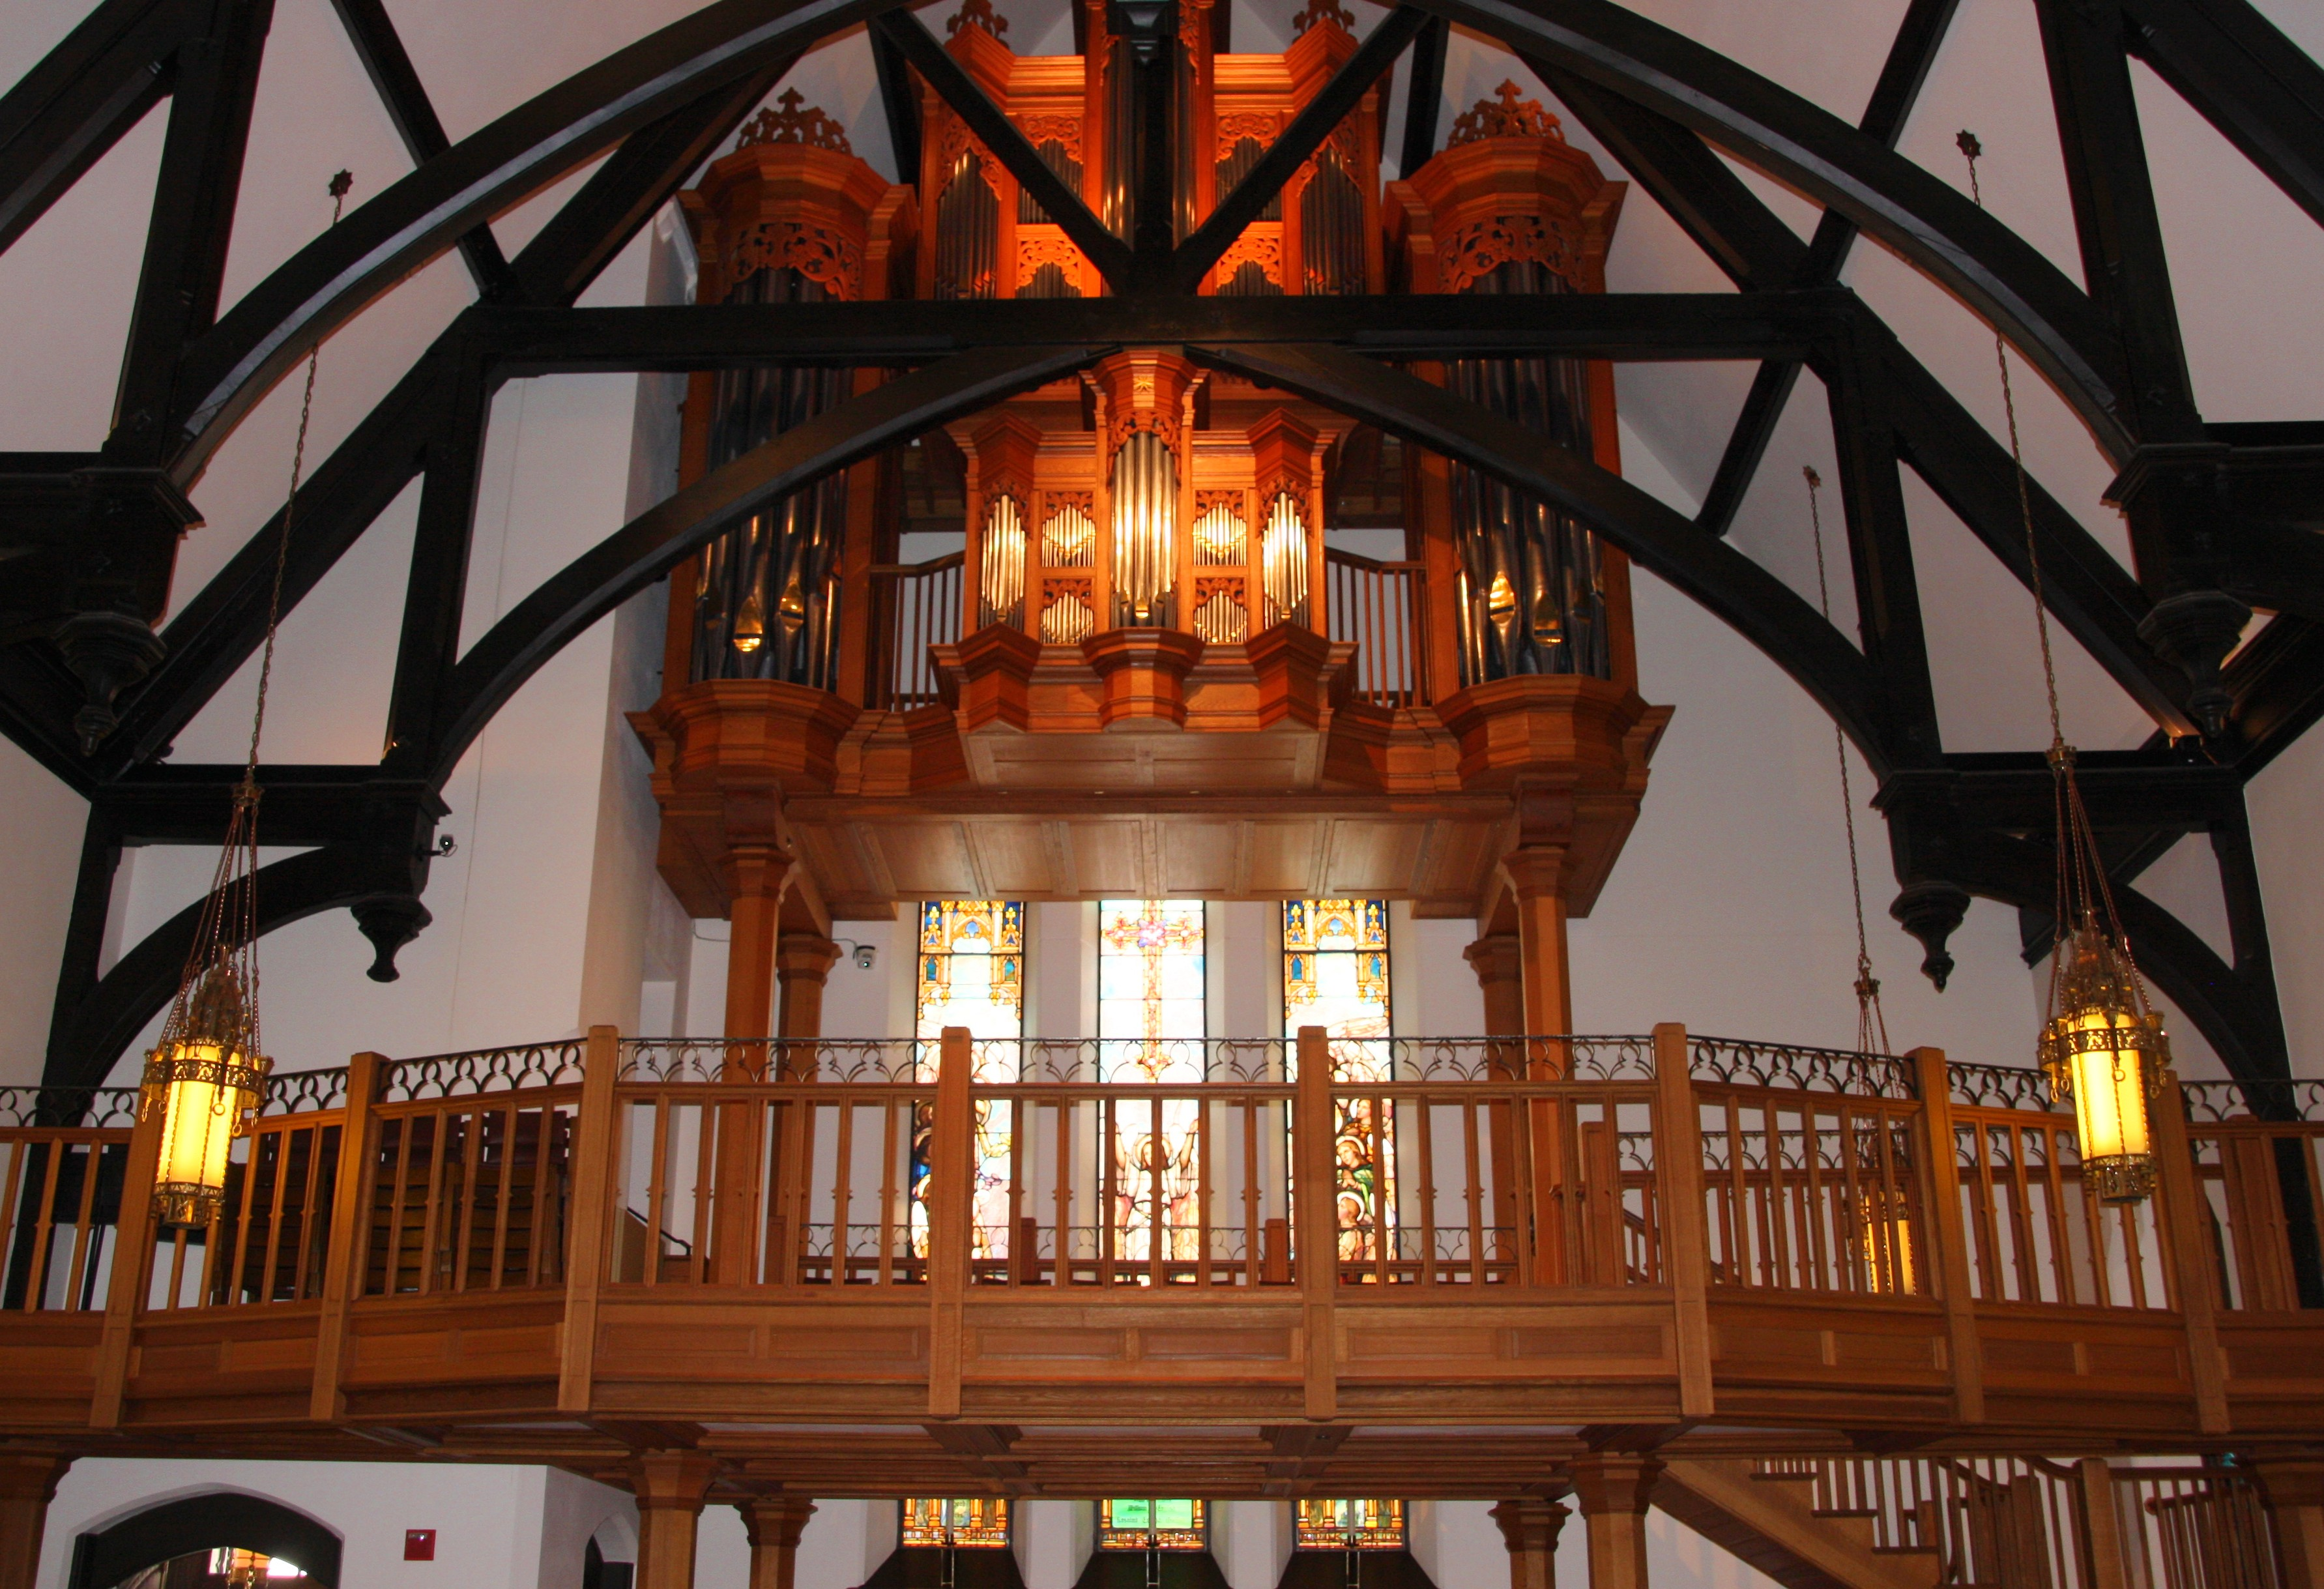 The organ loft on the cathedral's west side.